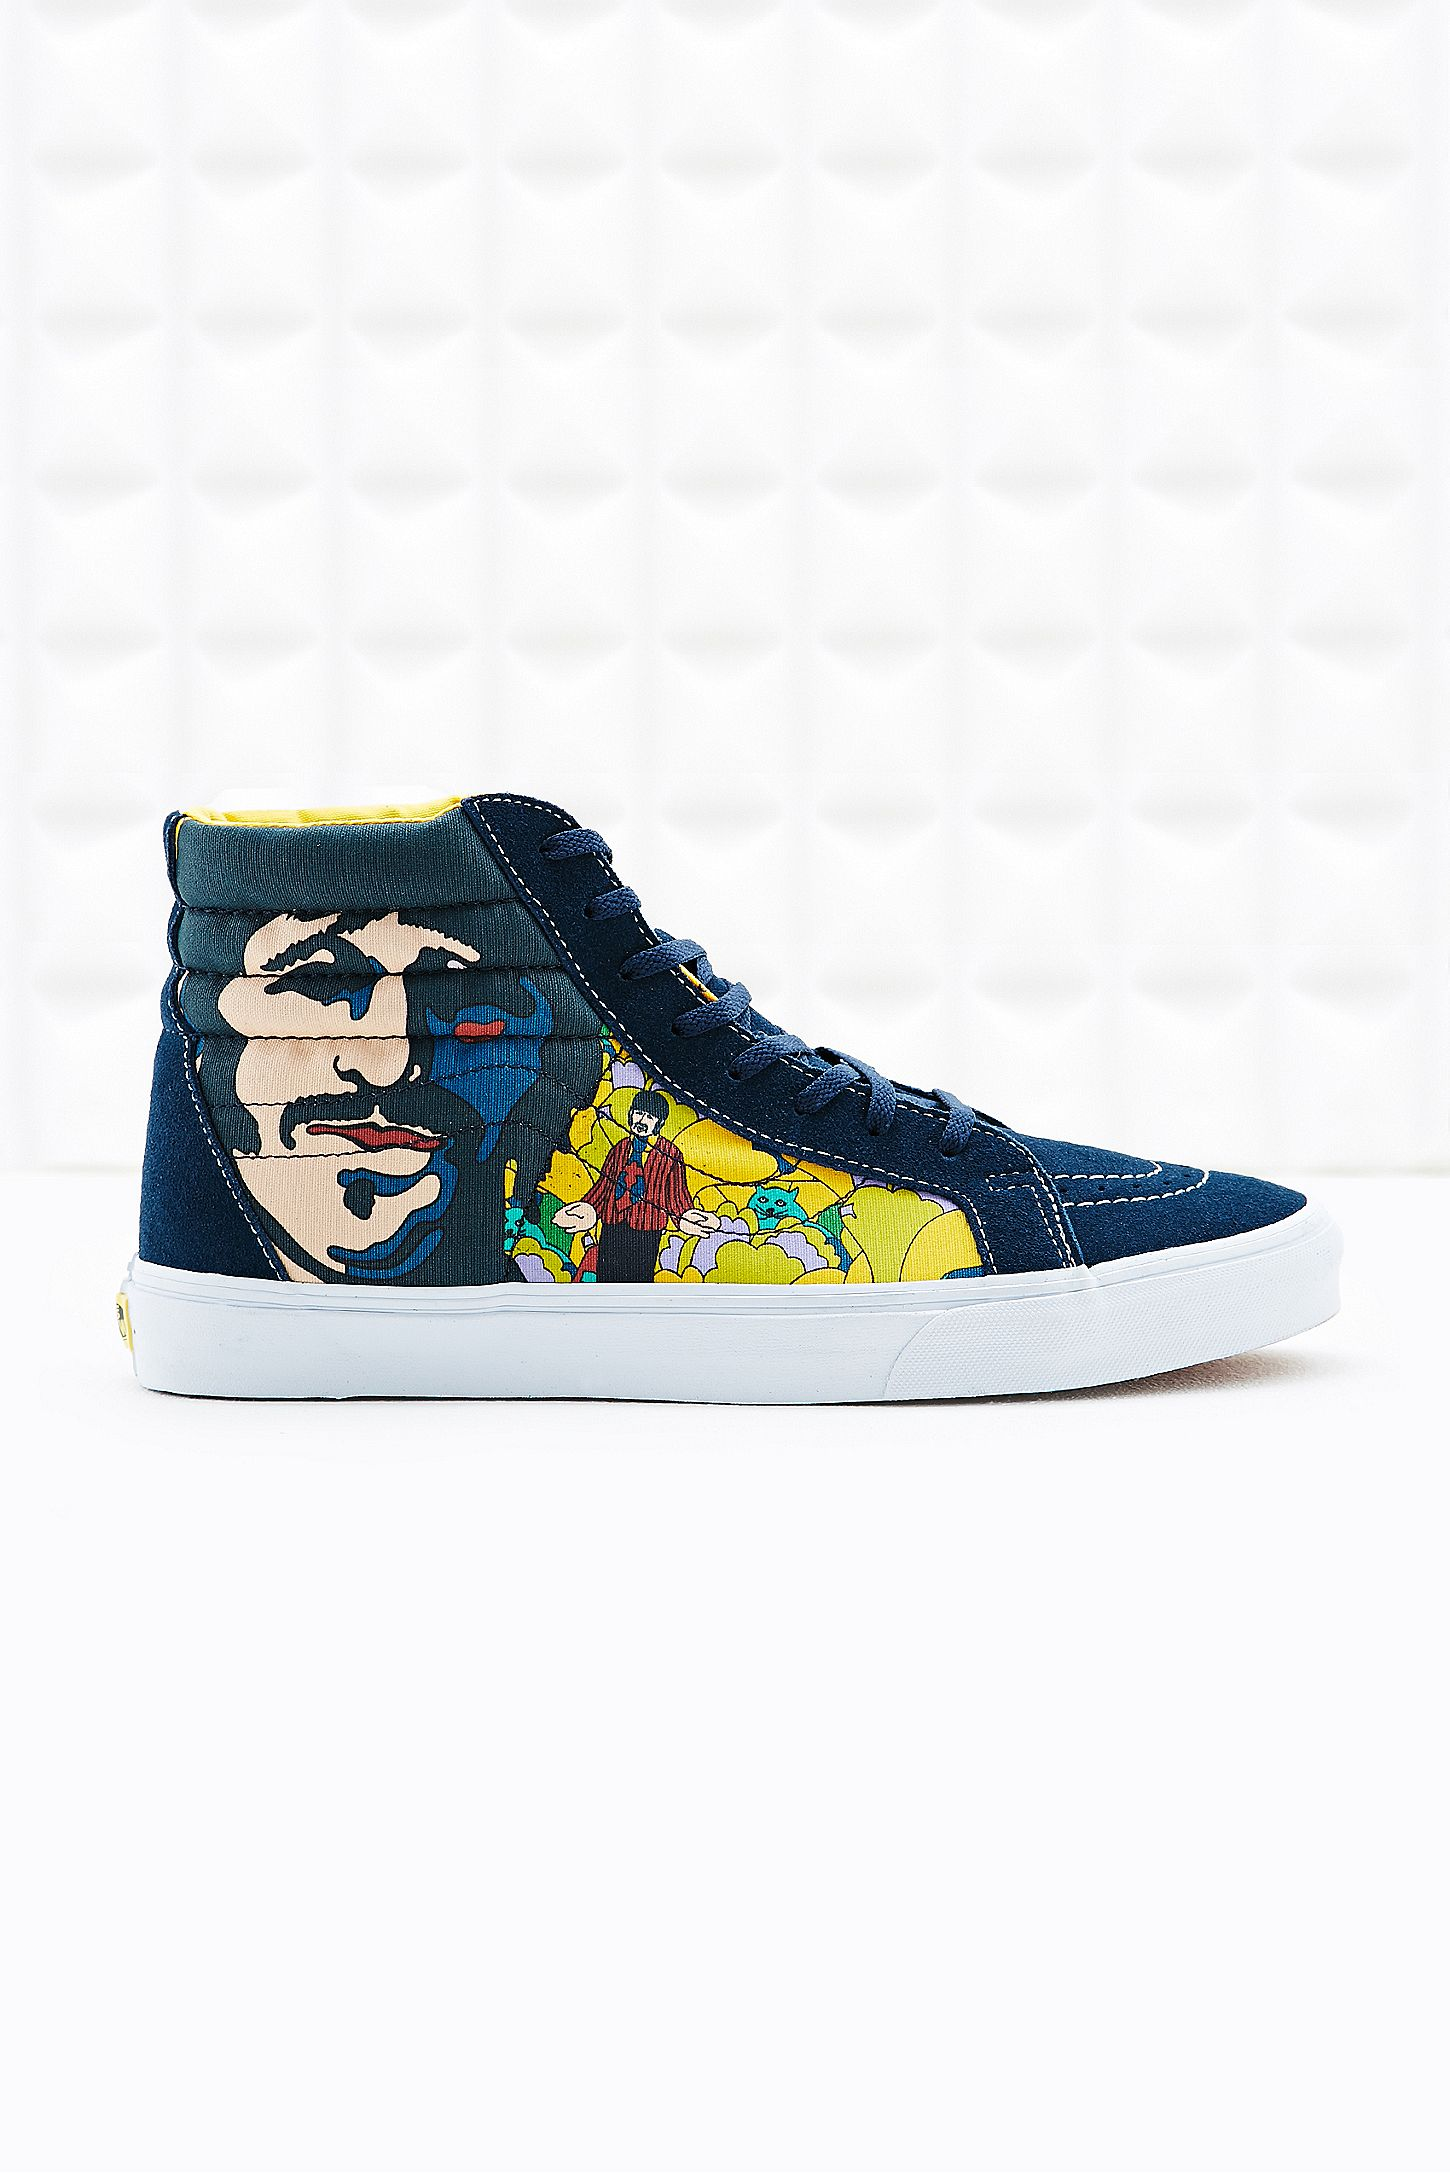 9fbccb9e61329d Vans Sk8-Hi Reissue Beatles Trainers in Navy. Click on image to zoom. Hover  to zoom. Double Tap to Zoom